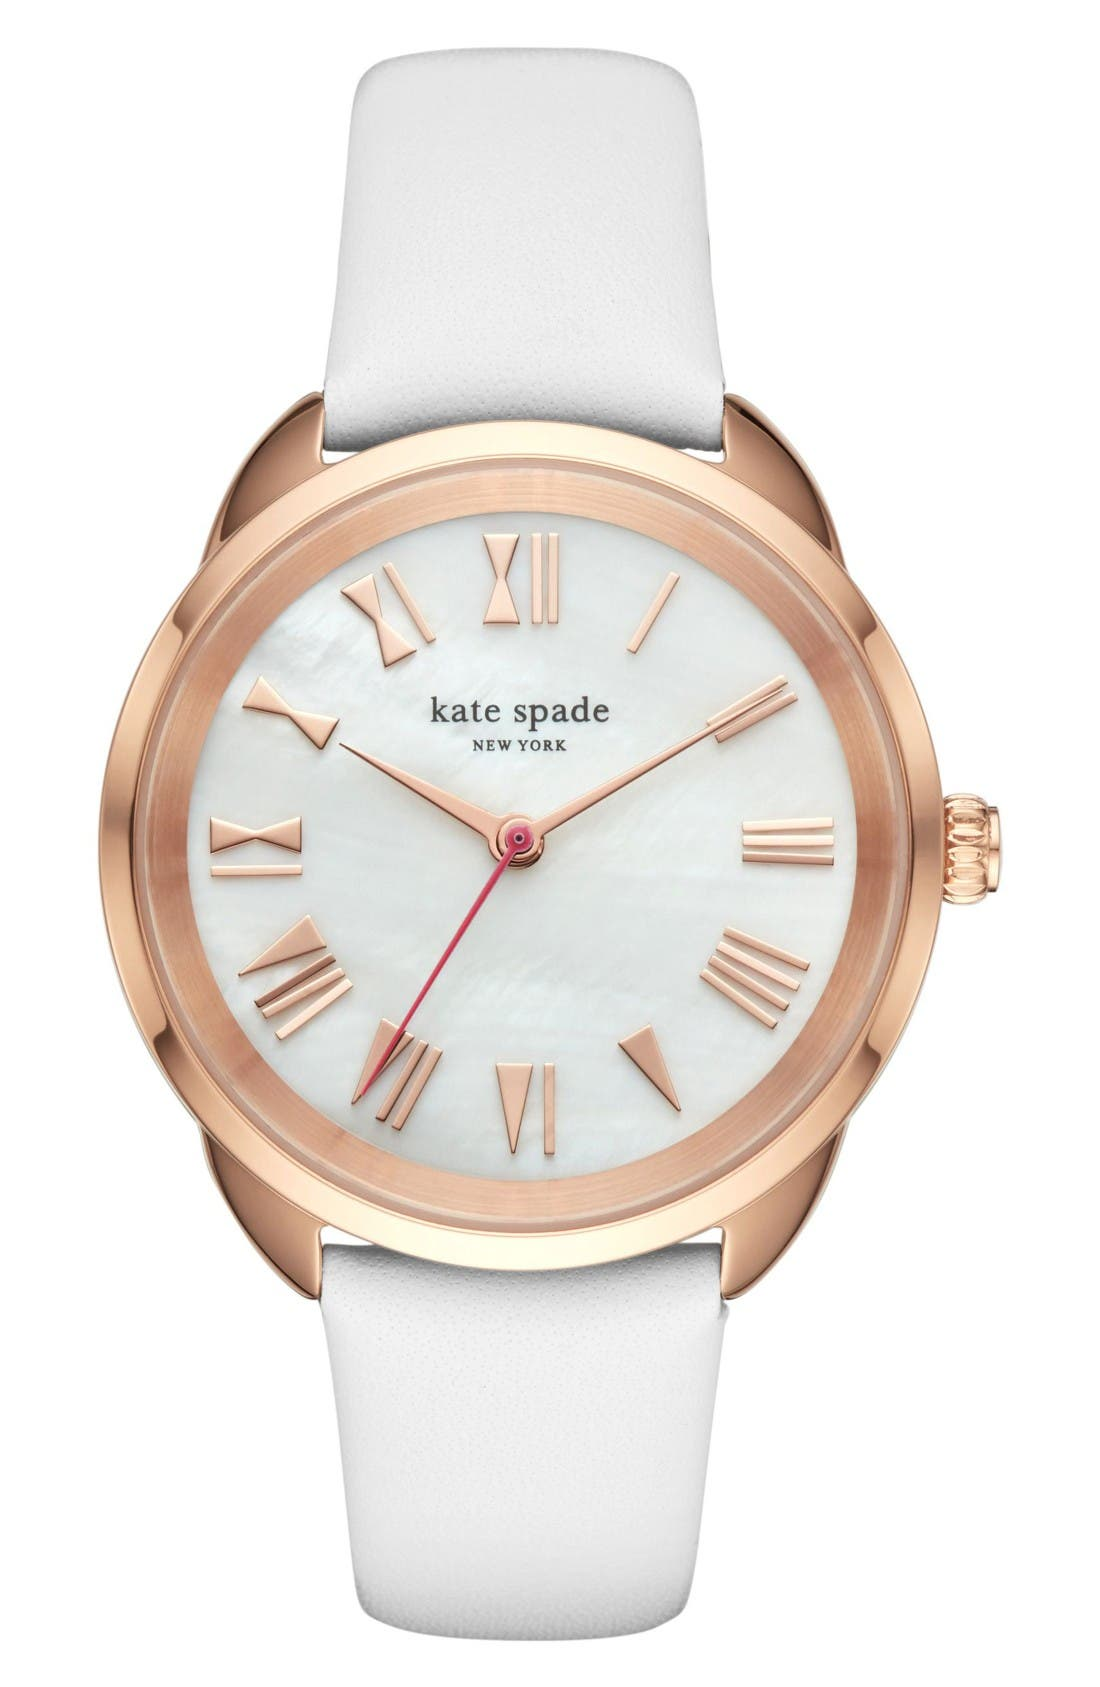 KATE SPADE NEW YORK crosstown leather strap watch, 34mm